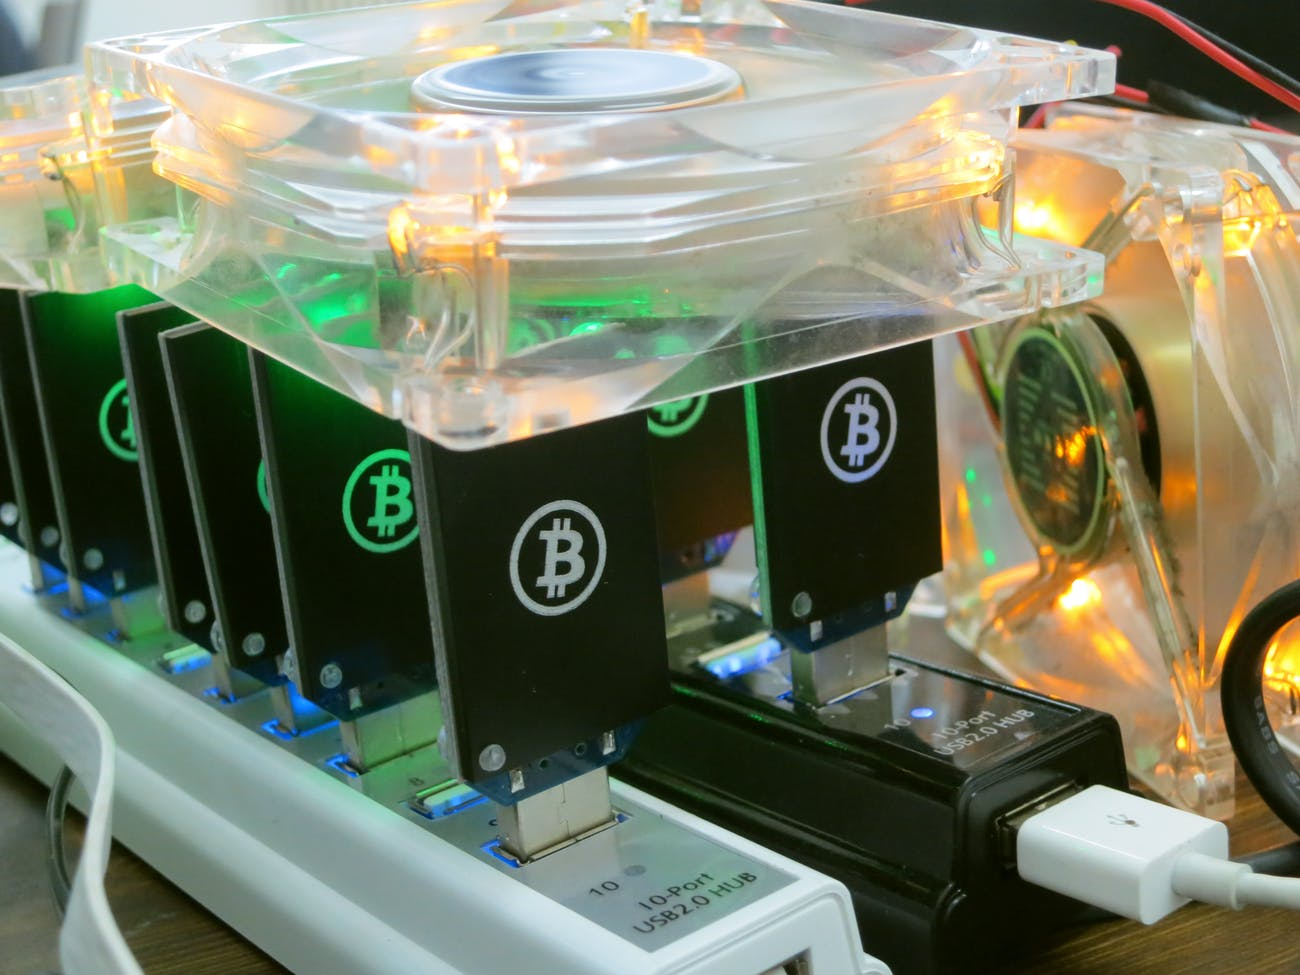 A series of secpailly-designed Bitcoin miners at work.